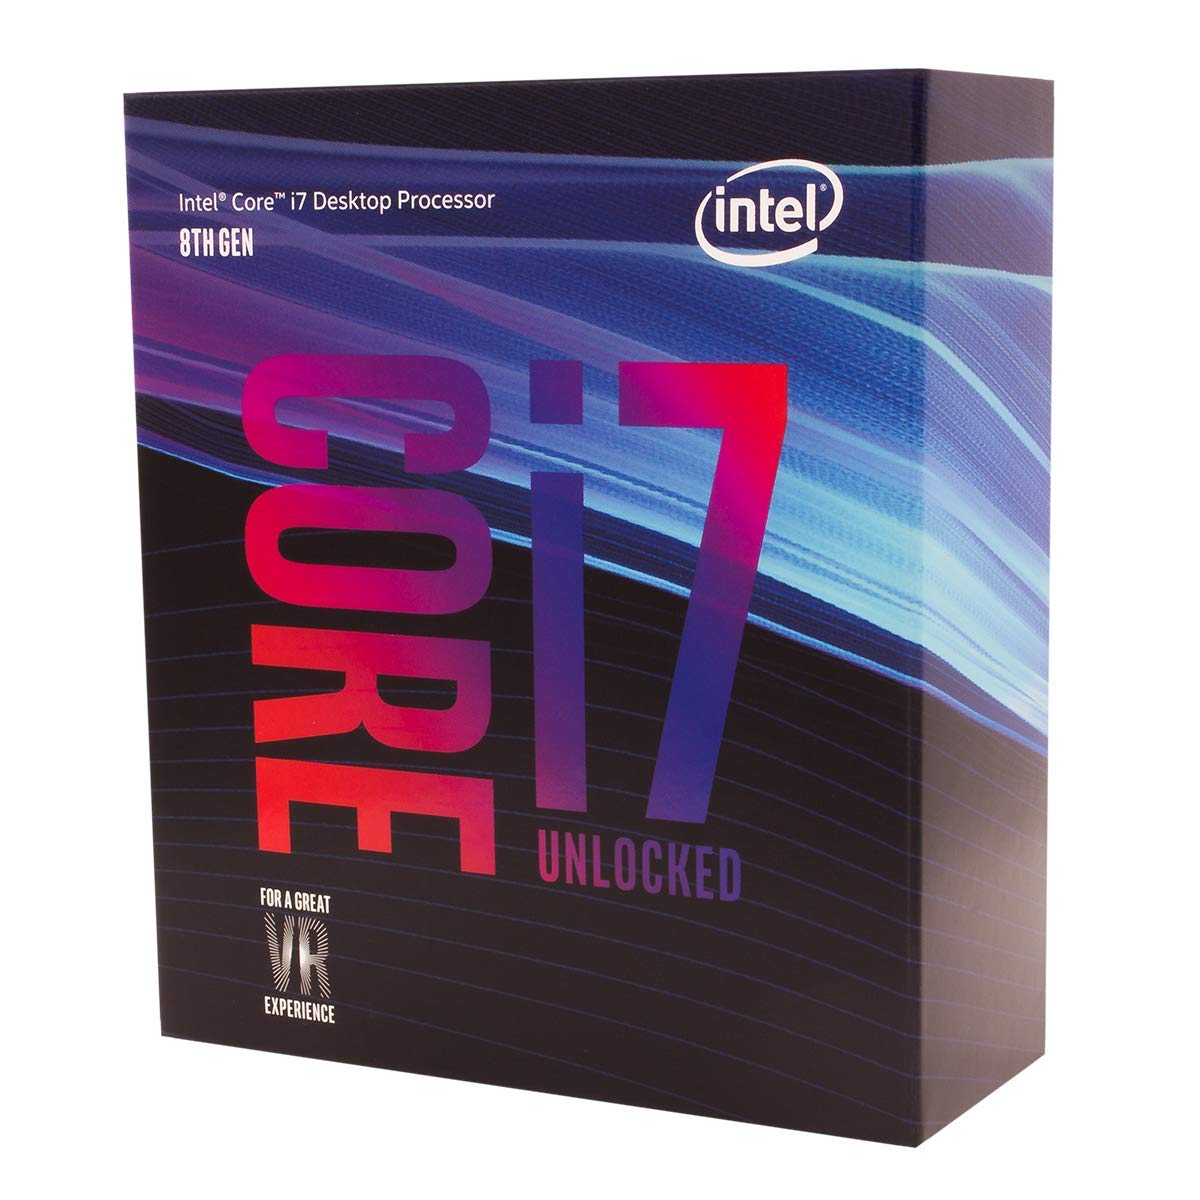 Miraculous Intel Core I7 8700K Desktop Processor 6 Cores Up To 4 7Ghz Turbo Unlocked Lga1151 300 Series 95W Interior Design Ideas Tzicisoteloinfo